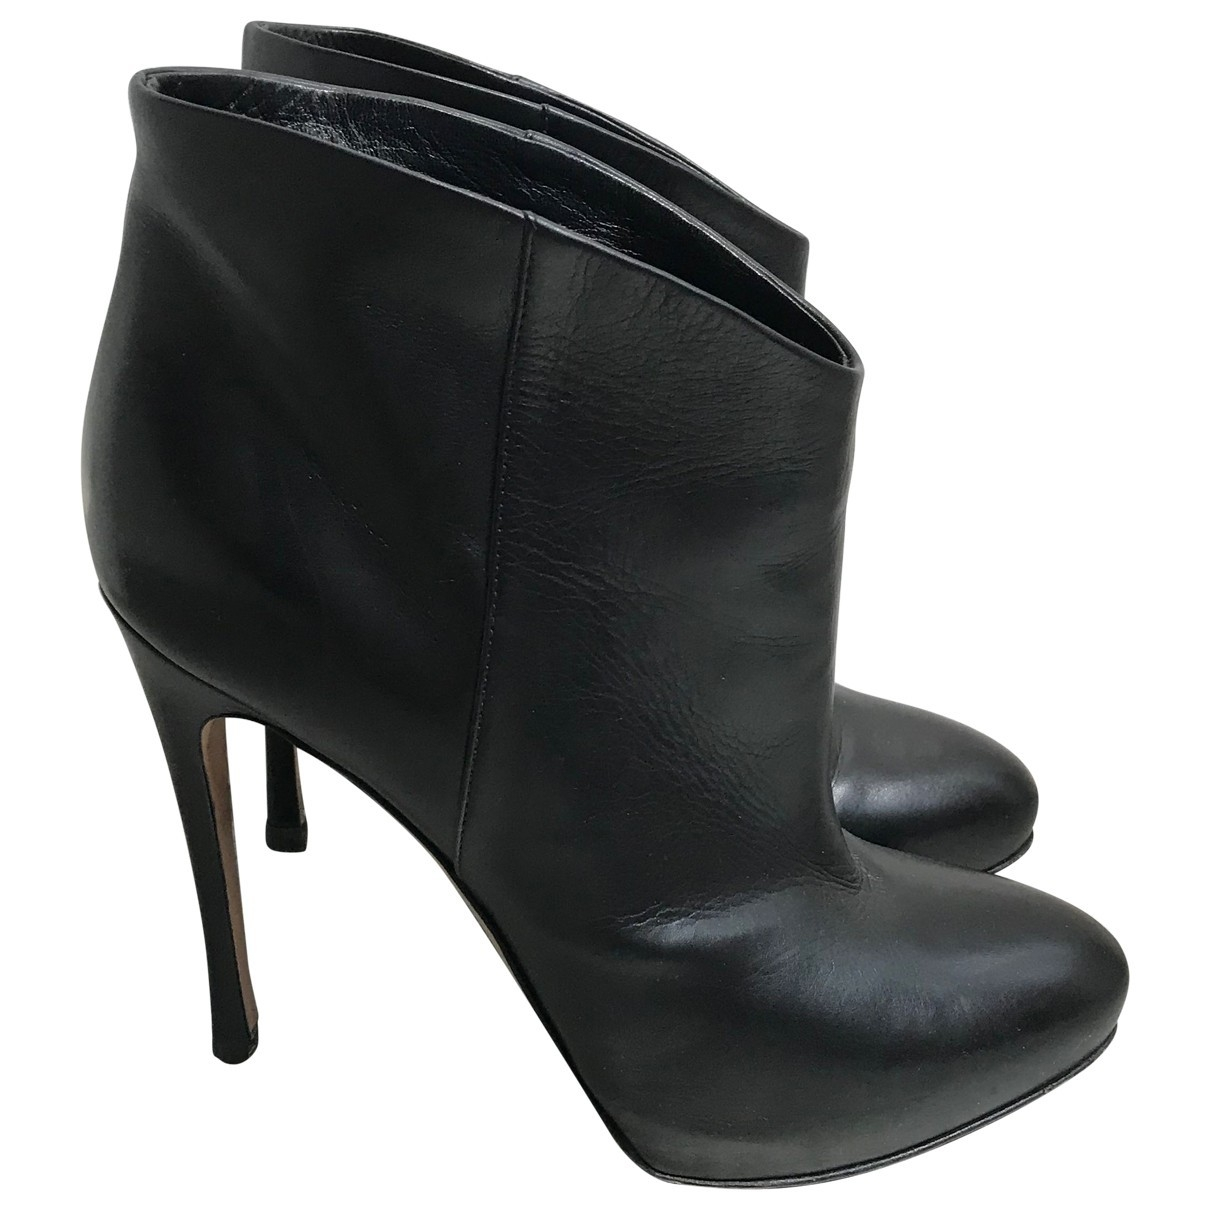 Gianvito Rossi \N Black Leather Ankle boots for Women 37.5 EU